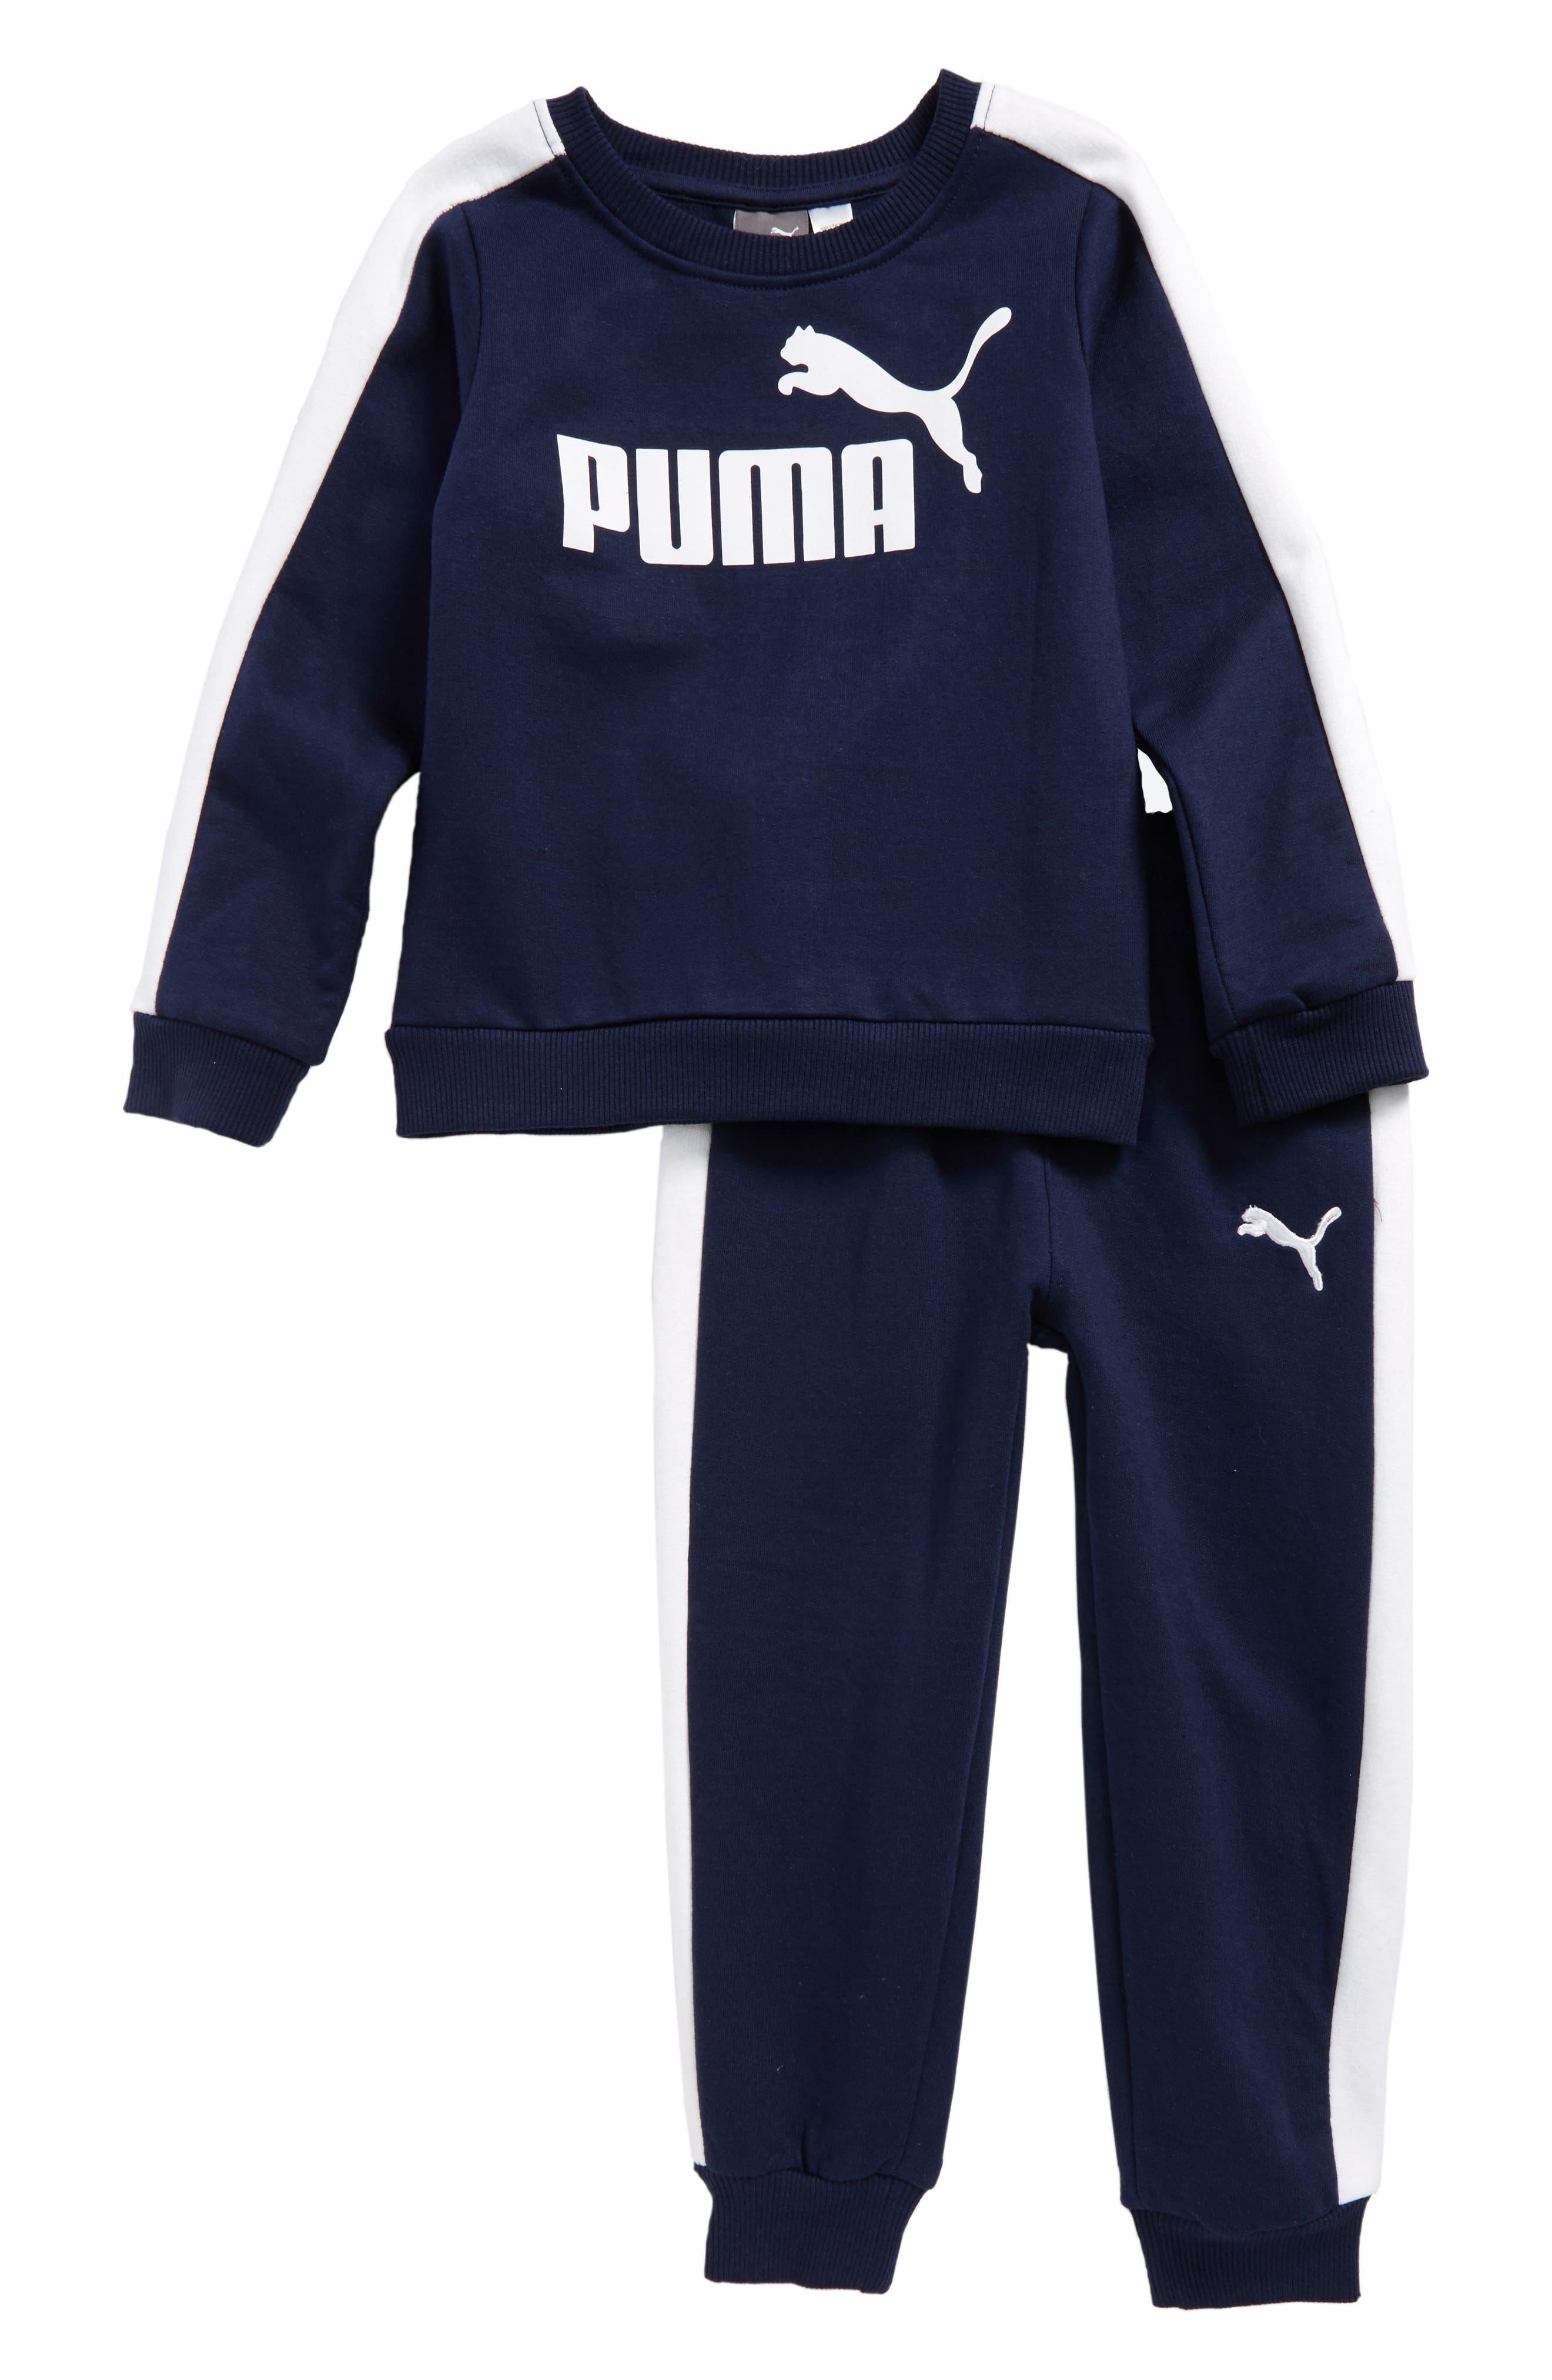 Sweatshirt & Sweatpants Set,                             Main thumbnail 1, color,                             Deep Navy